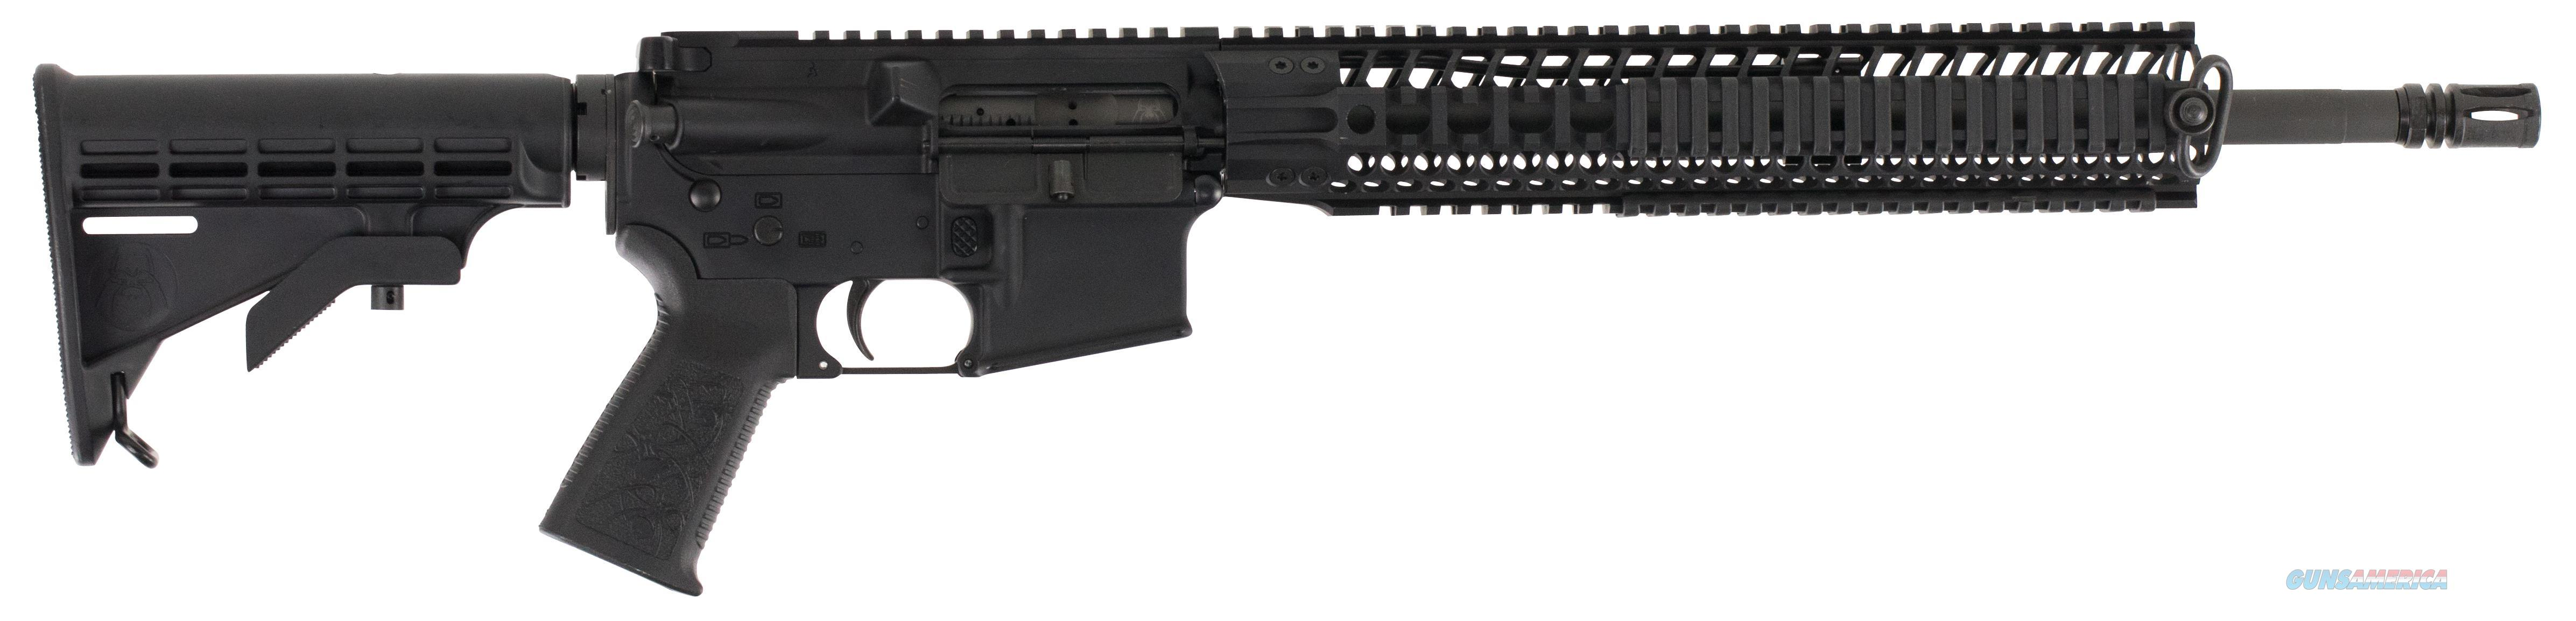 "Spikes Str5025r2s St-15 Le M4 Carbine With 12"" Bar2 Rail Semi-Automatic 223 Remington/5.56 Nato 16"" No Magazine 6-Position Black Stk Black Hard Coat Anodized STR5025-R2S  Guns > Rifles > S Misc Rifles"